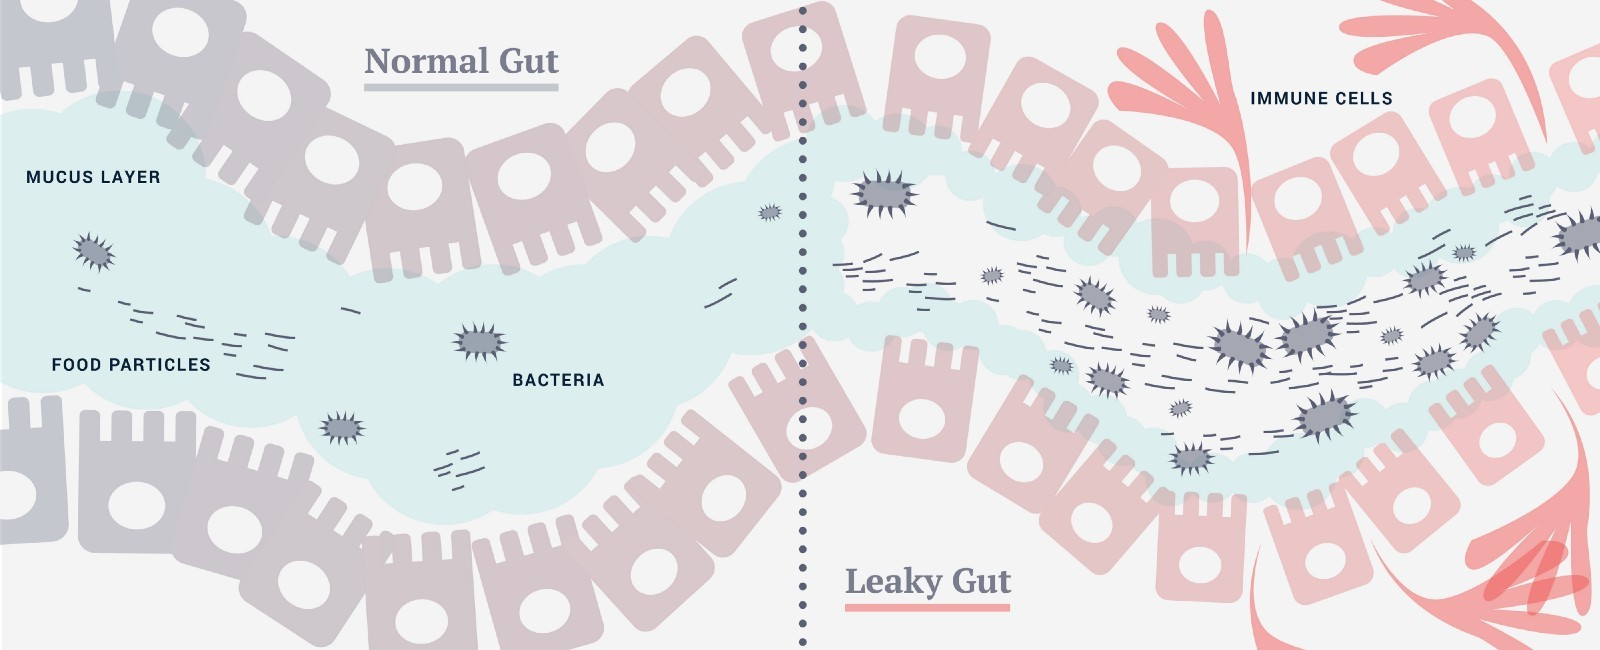 Candida can play a part in weakening intestinal barriers and cause leaky gut syndrome